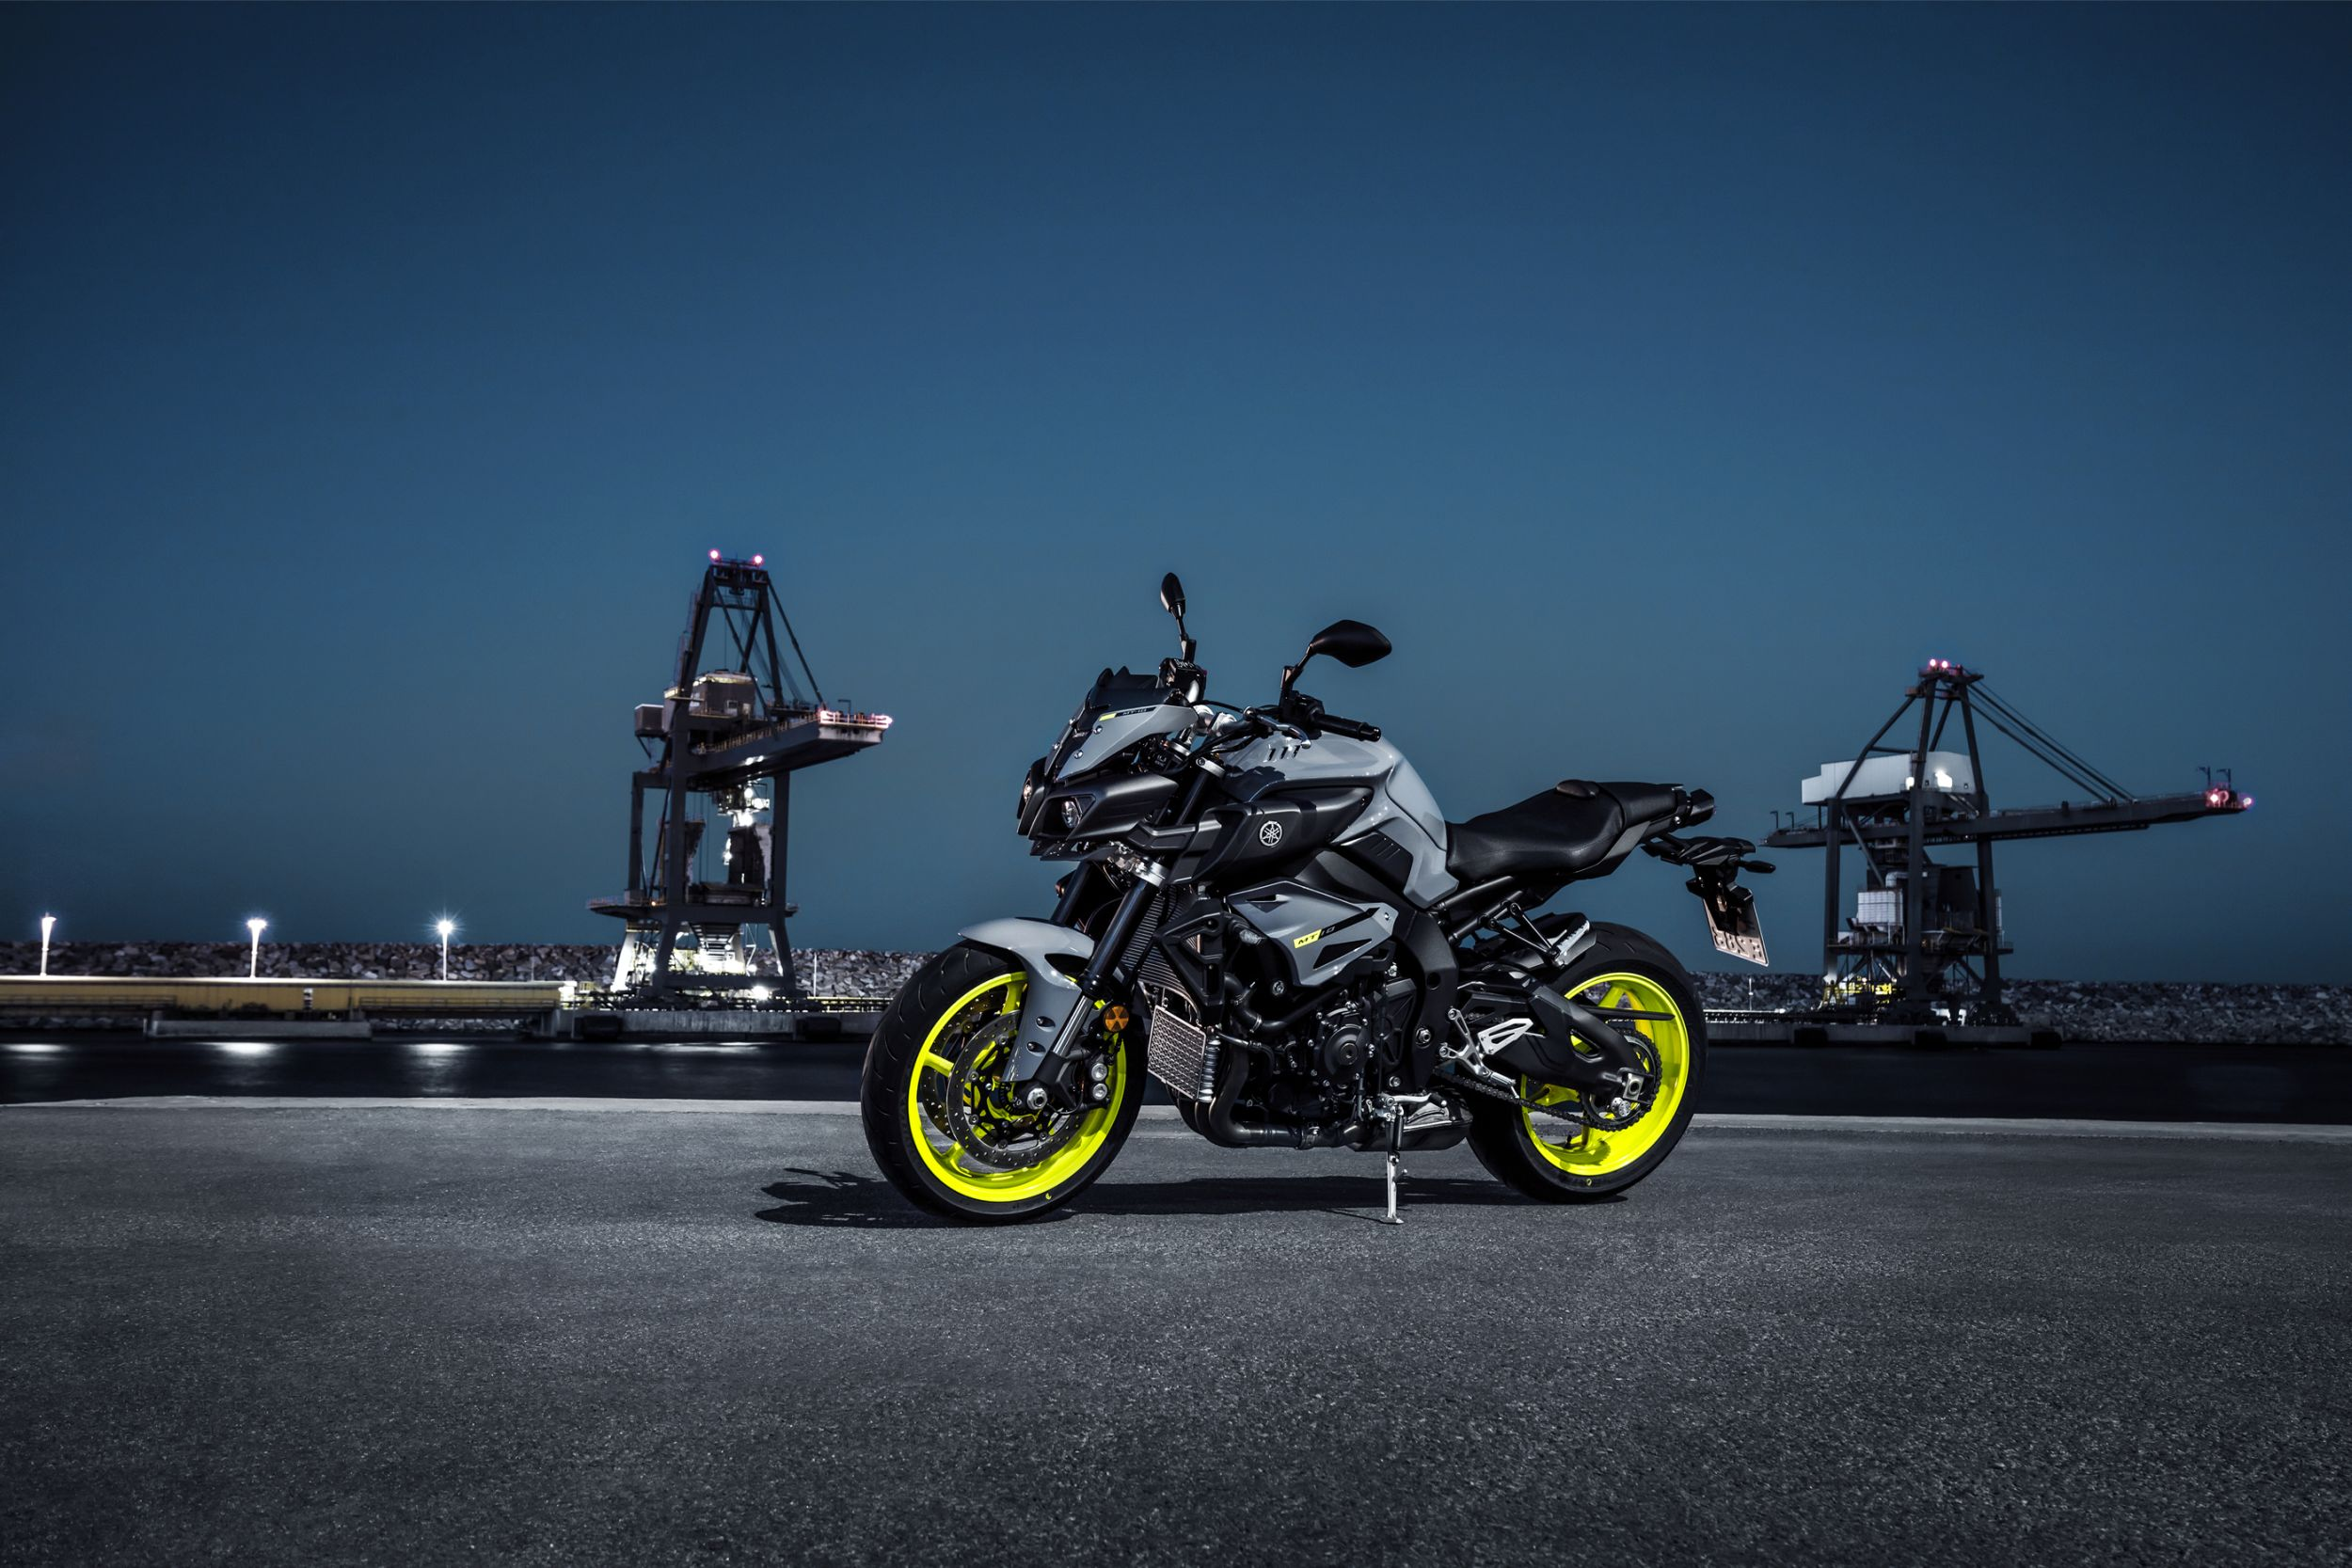 motorrad occasion yamaha mt 10 kaufen. Black Bedroom Furniture Sets. Home Design Ideas